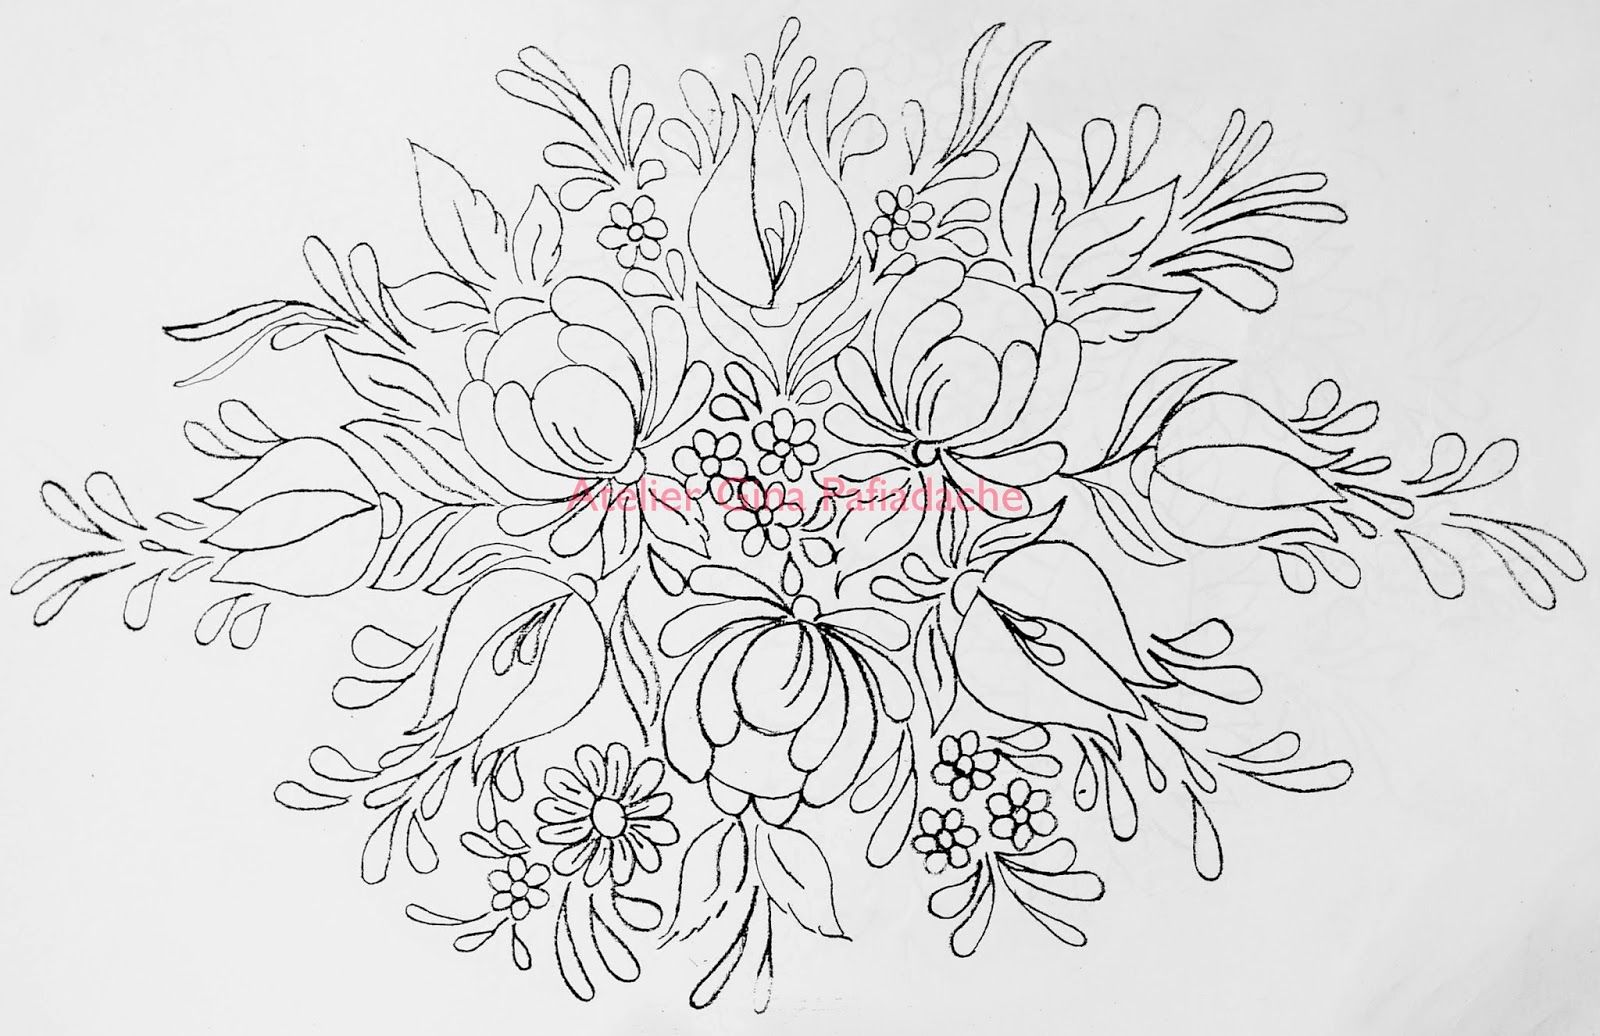 taba coloring pages - photo#26